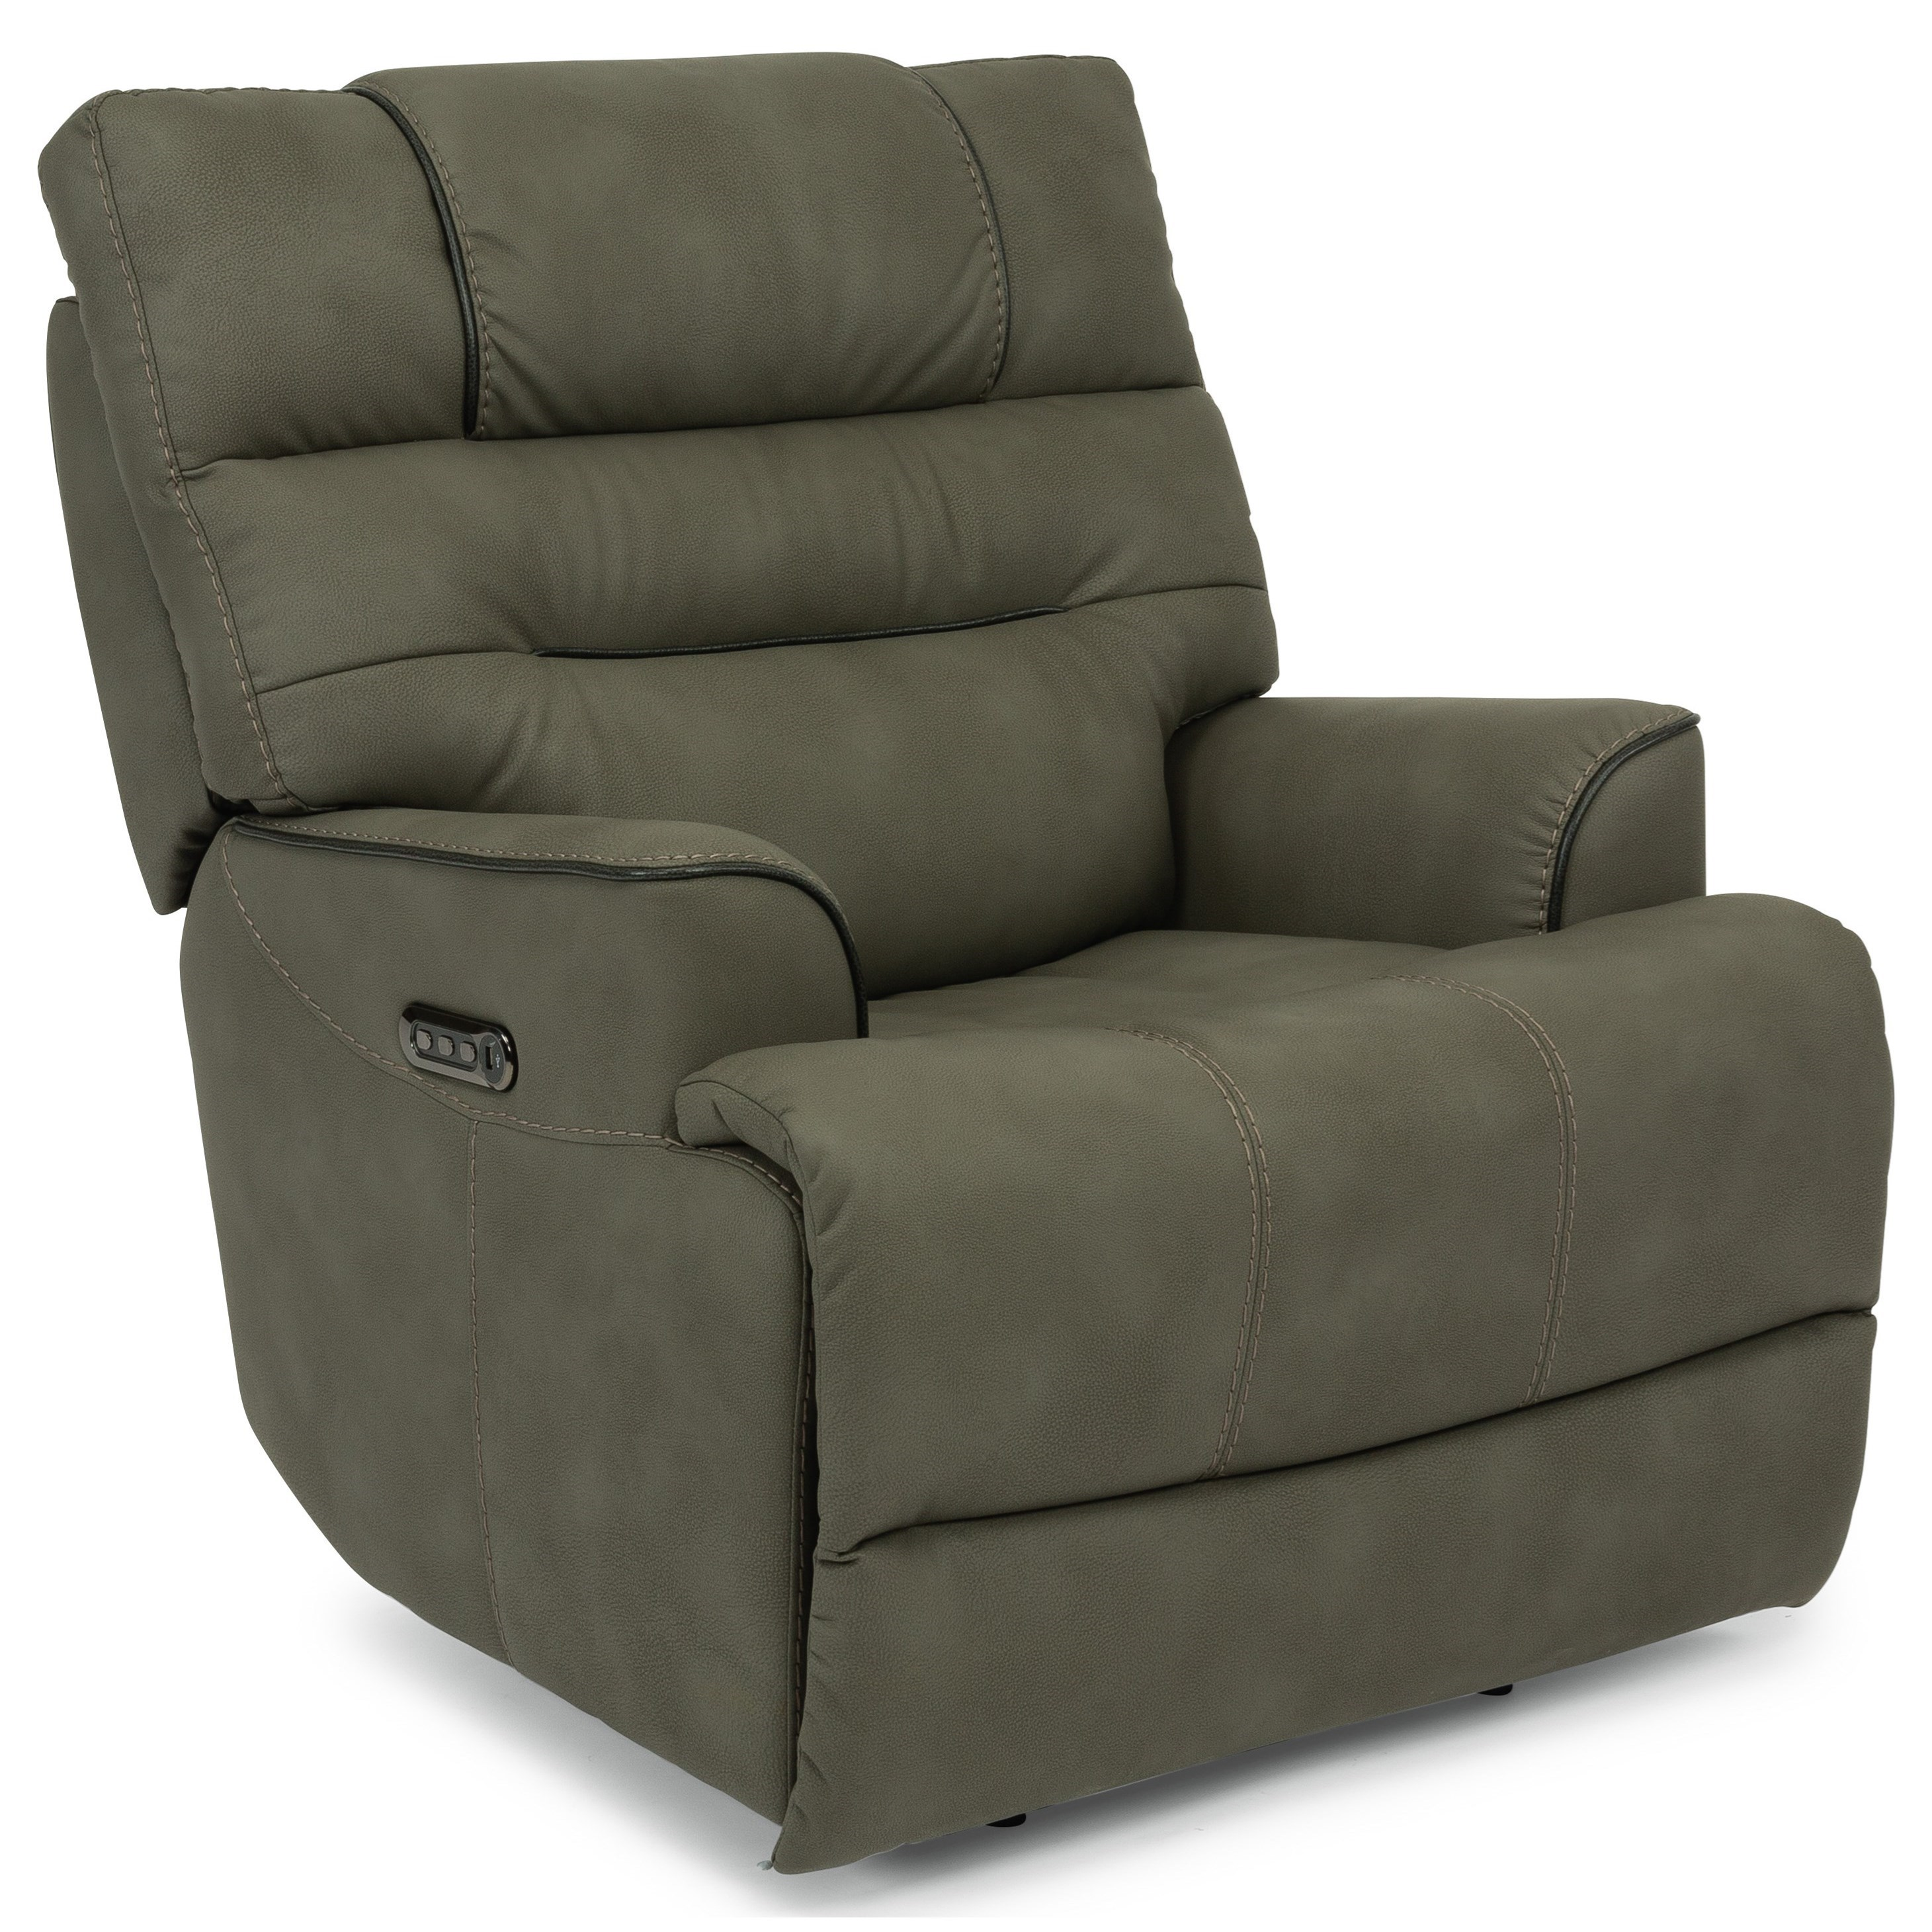 Latitudes - Brian Power Recliner by Flexsteel at Furniture and ApplianceMart